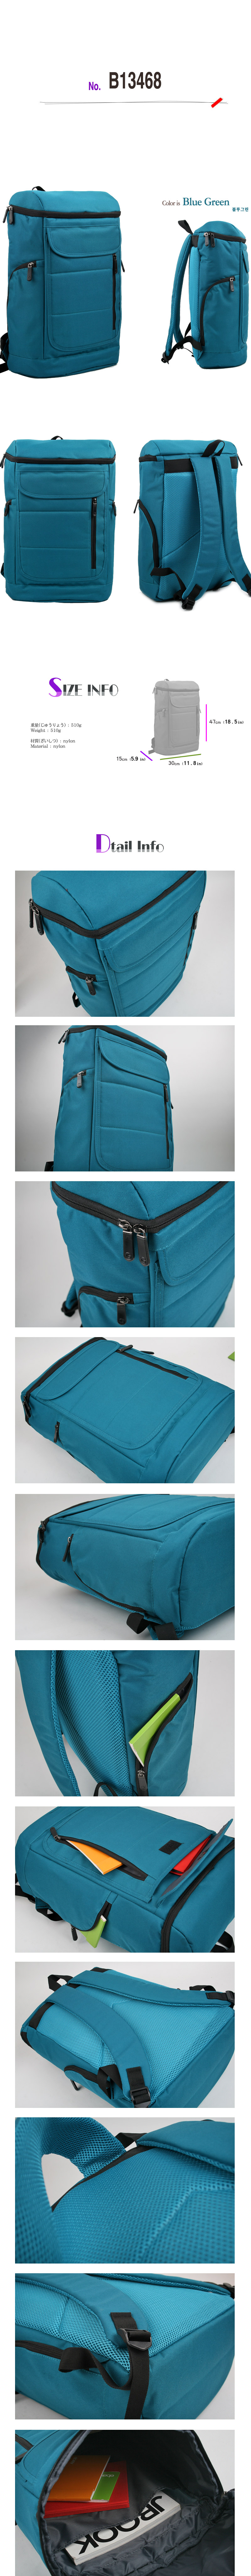 backpack no.B13468view